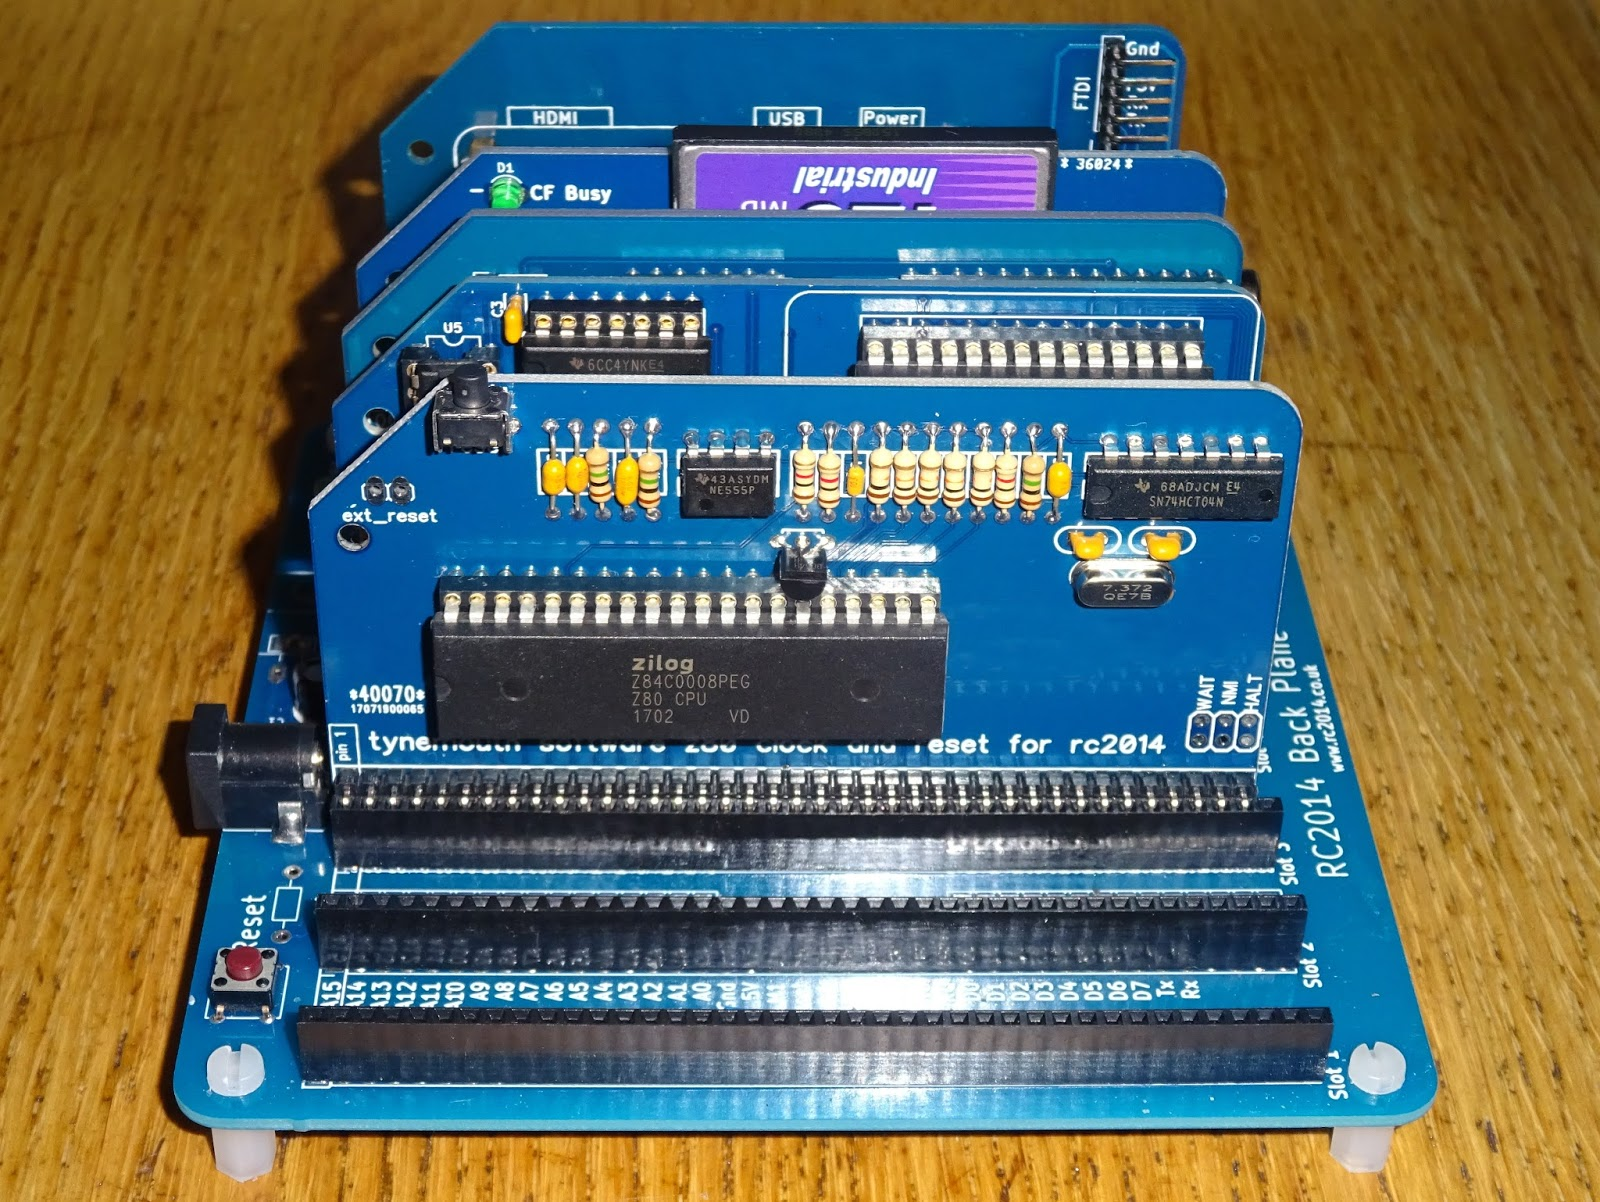 Tynemouth Software: Z80 CPU, Clock and Reset module for RC2014